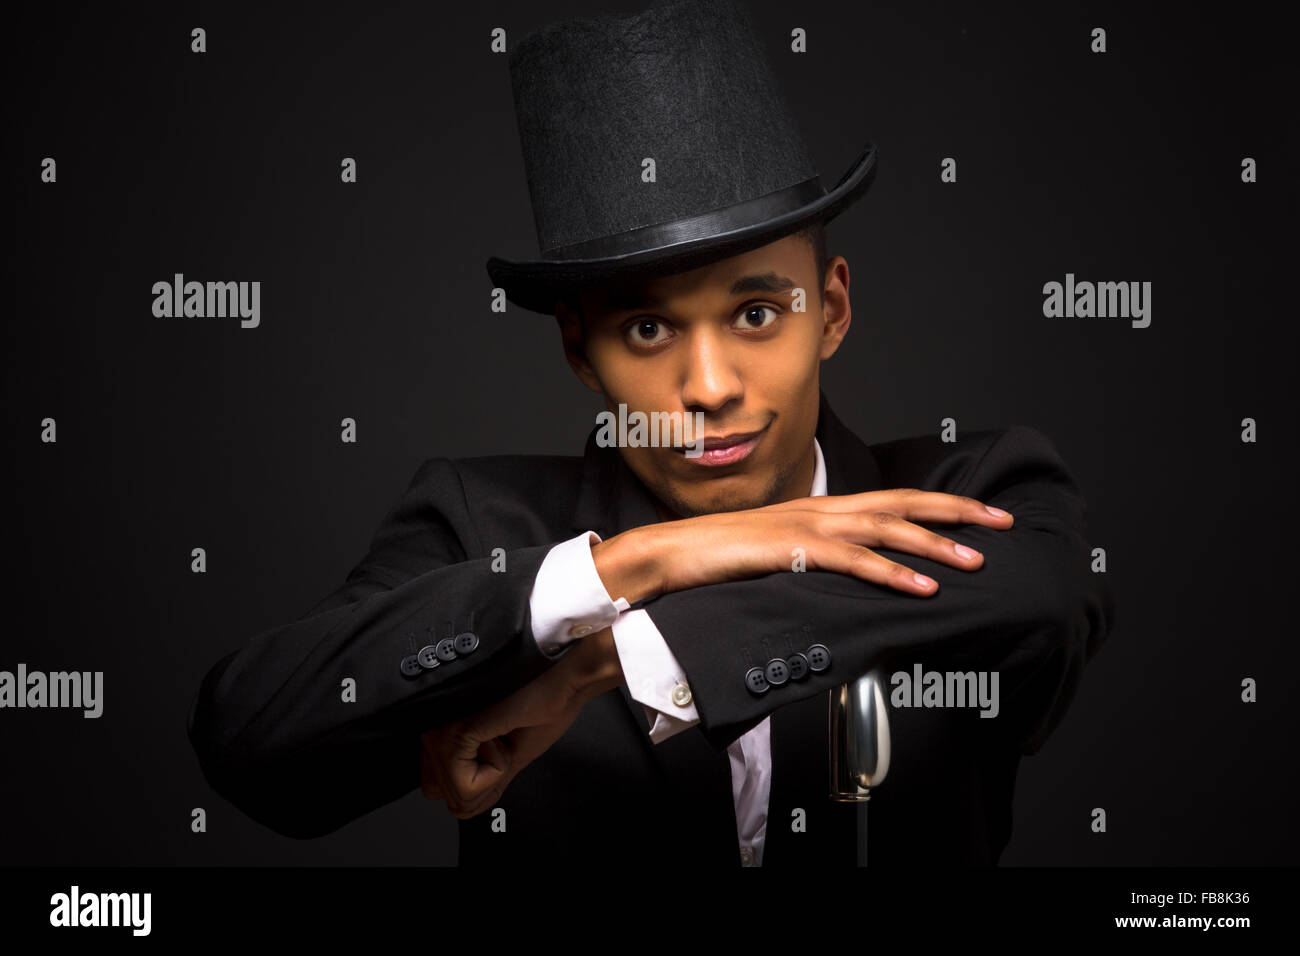 Handsome man in top hat posing with cane Stock Photo